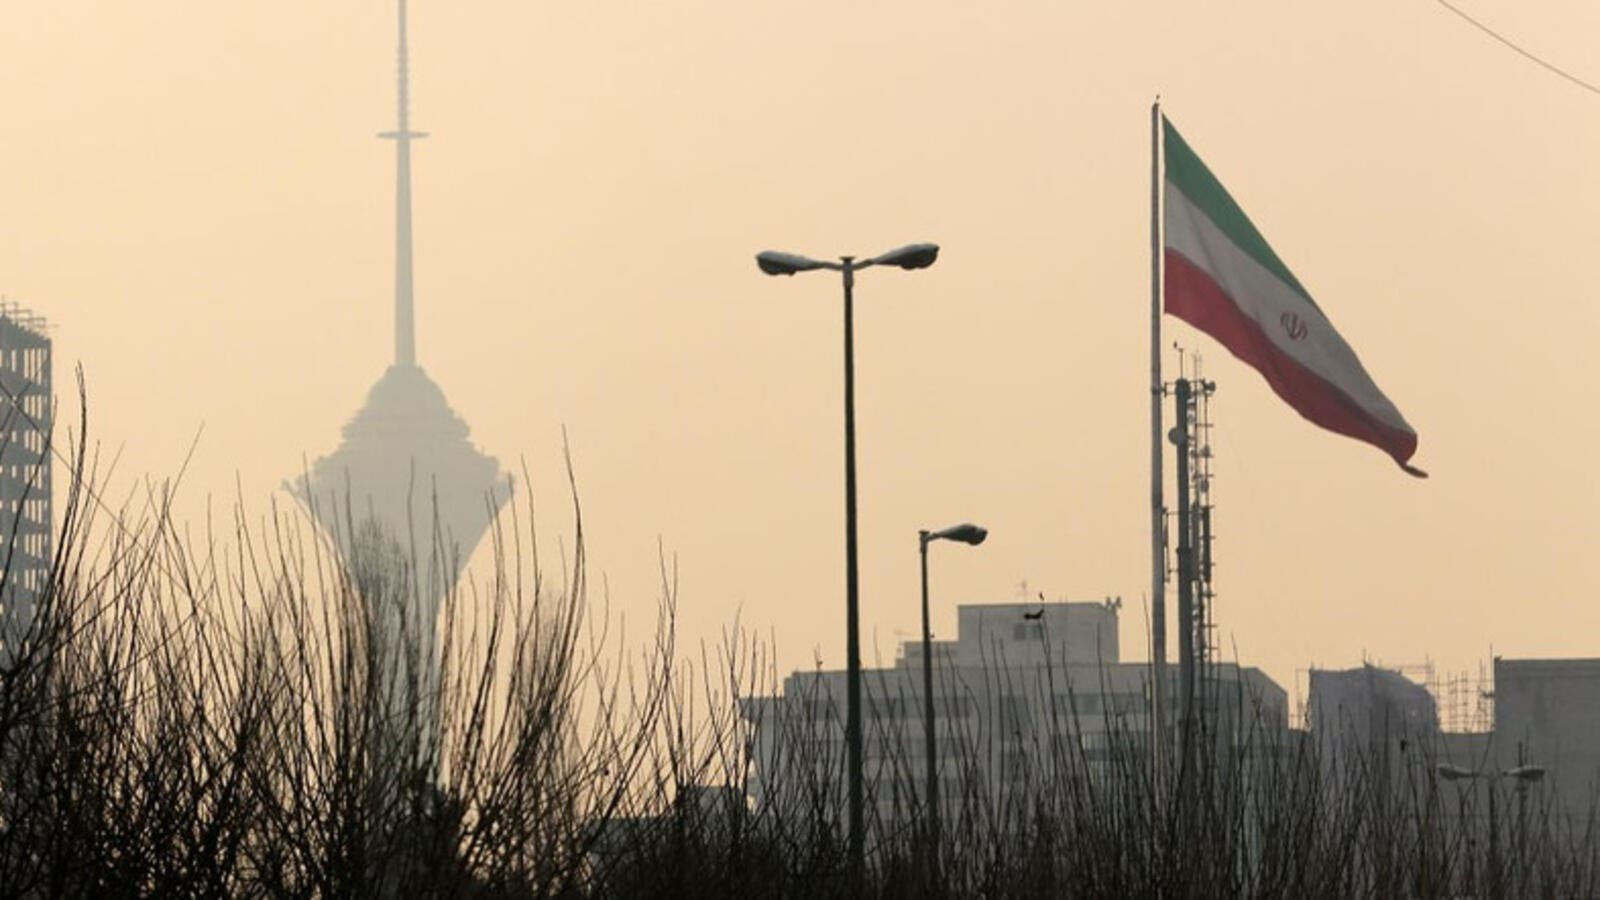 A general view of the Milad telecommunication tower engulfed by smog in the Iranian capital Tehran (AFP/File Photo)